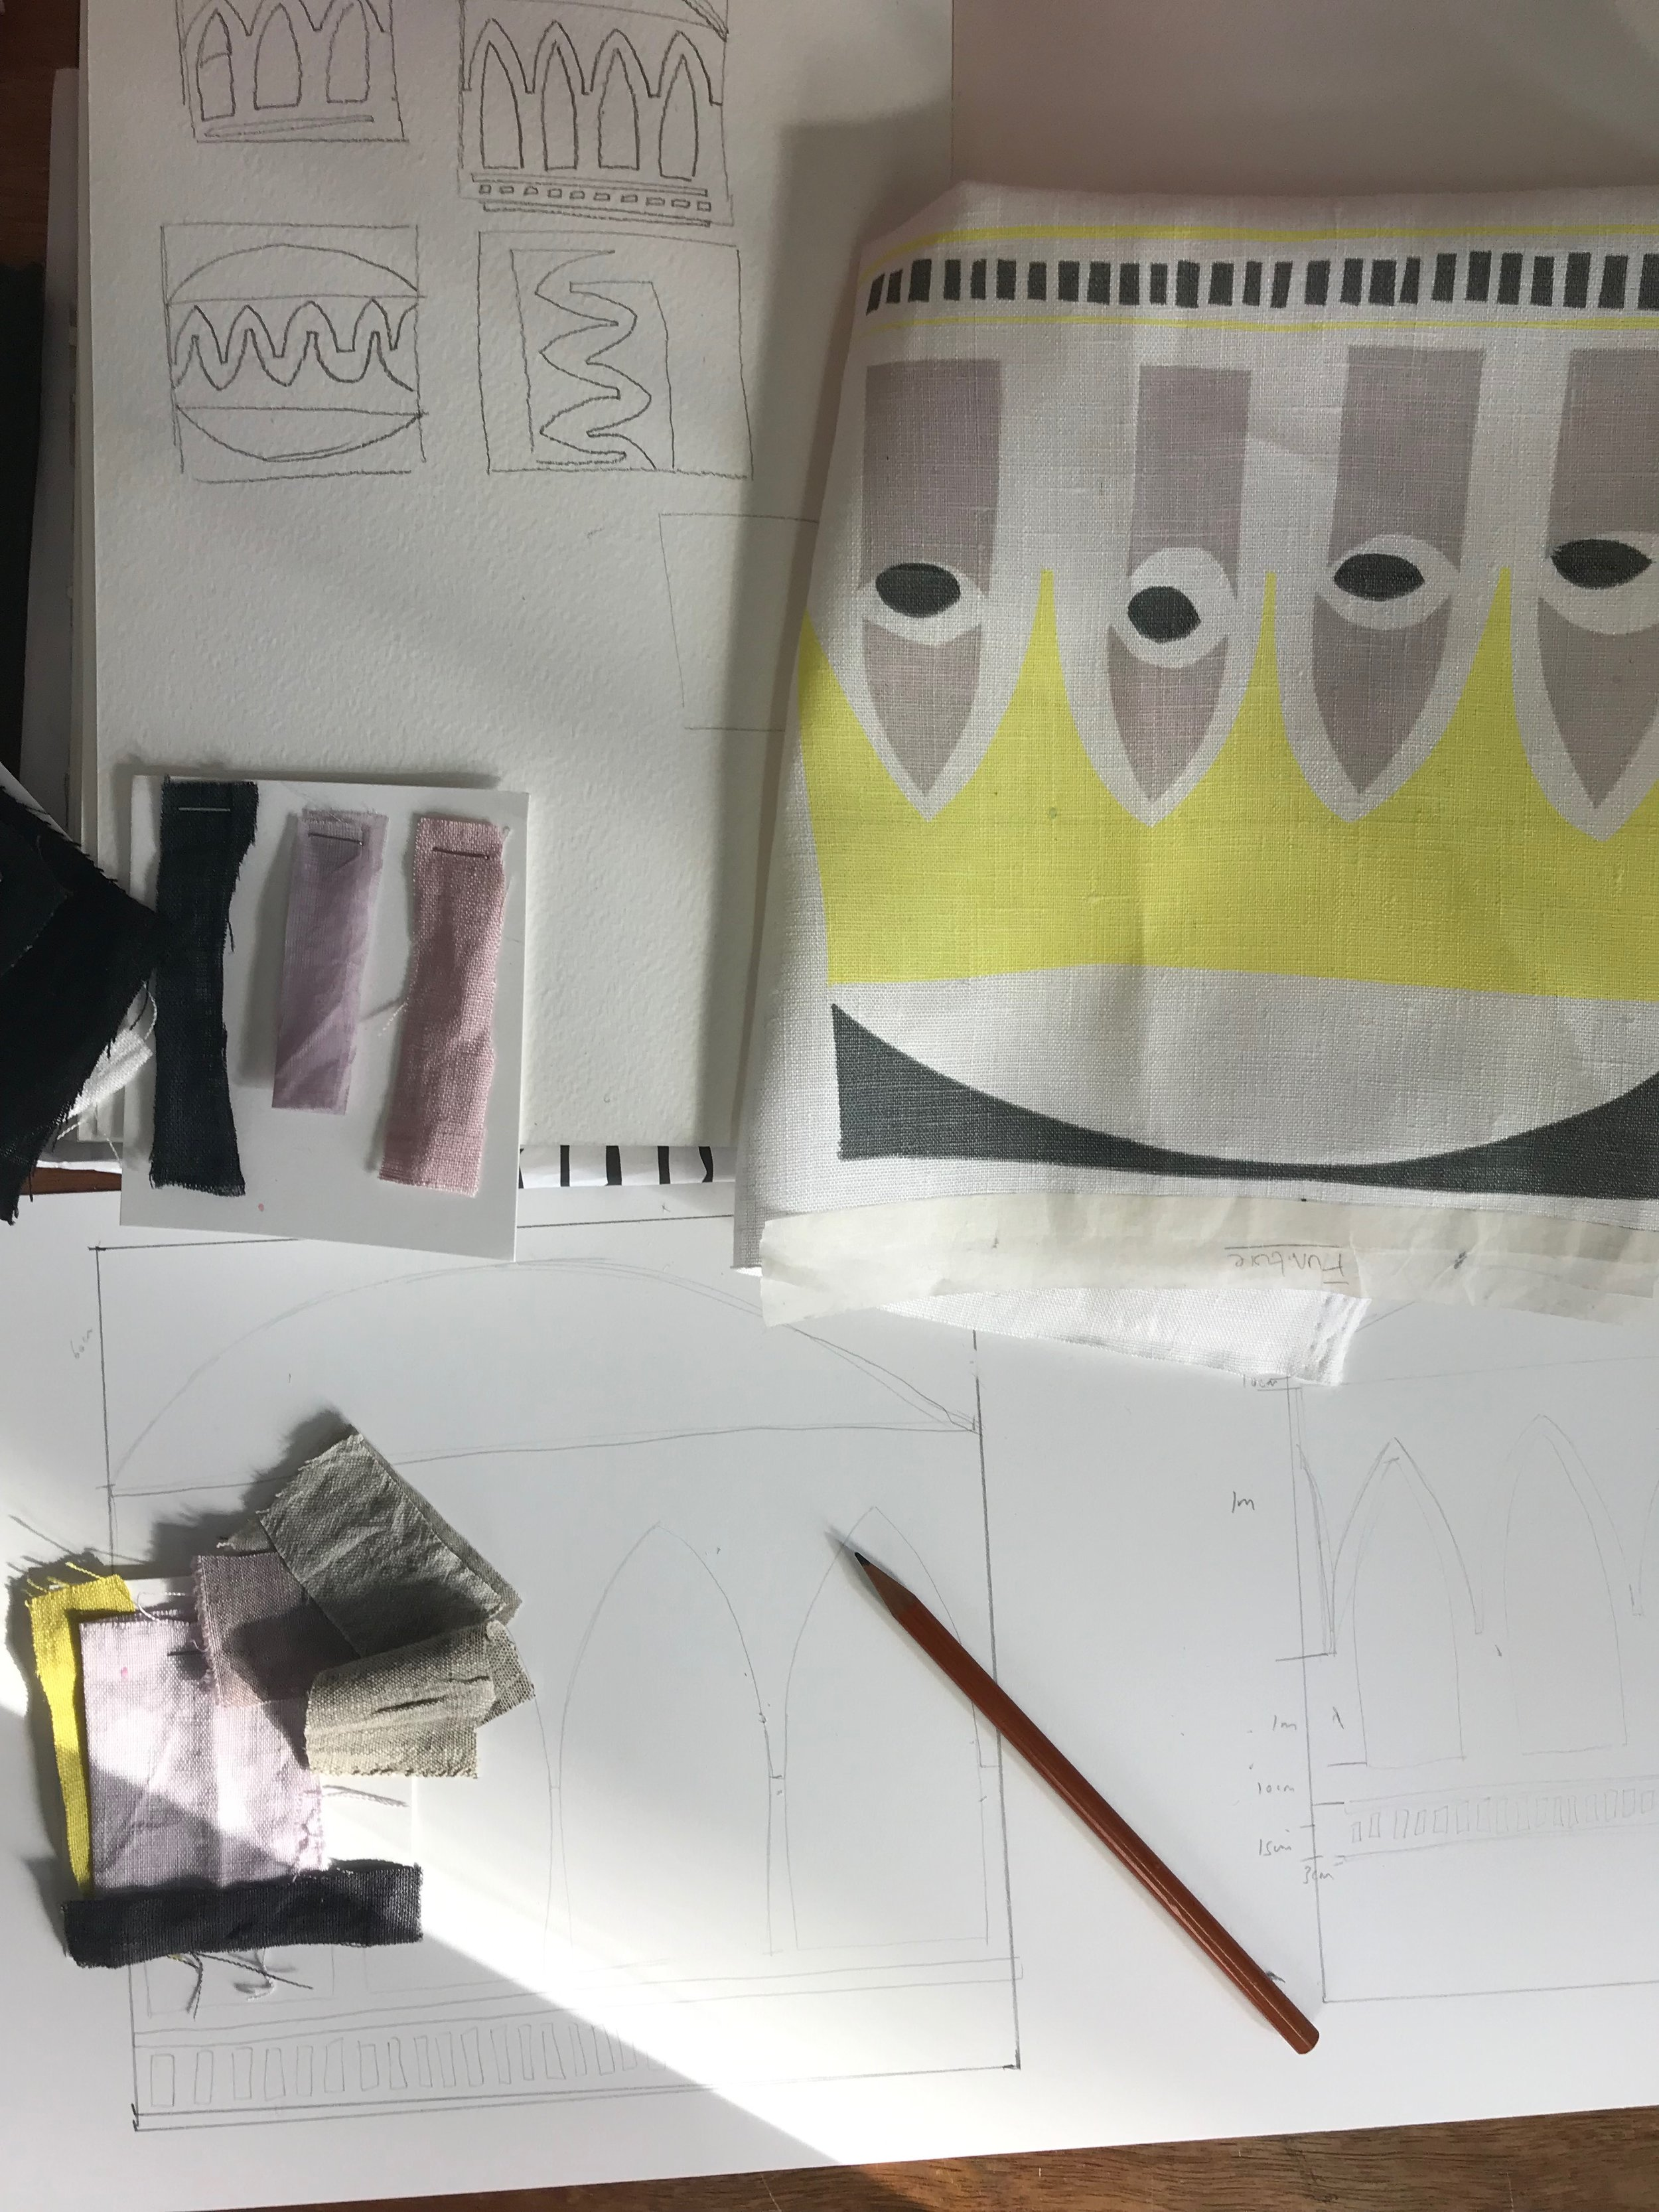 The beginning of the design process, a screen printed sample, a scale drawing and a few fabric swatches.